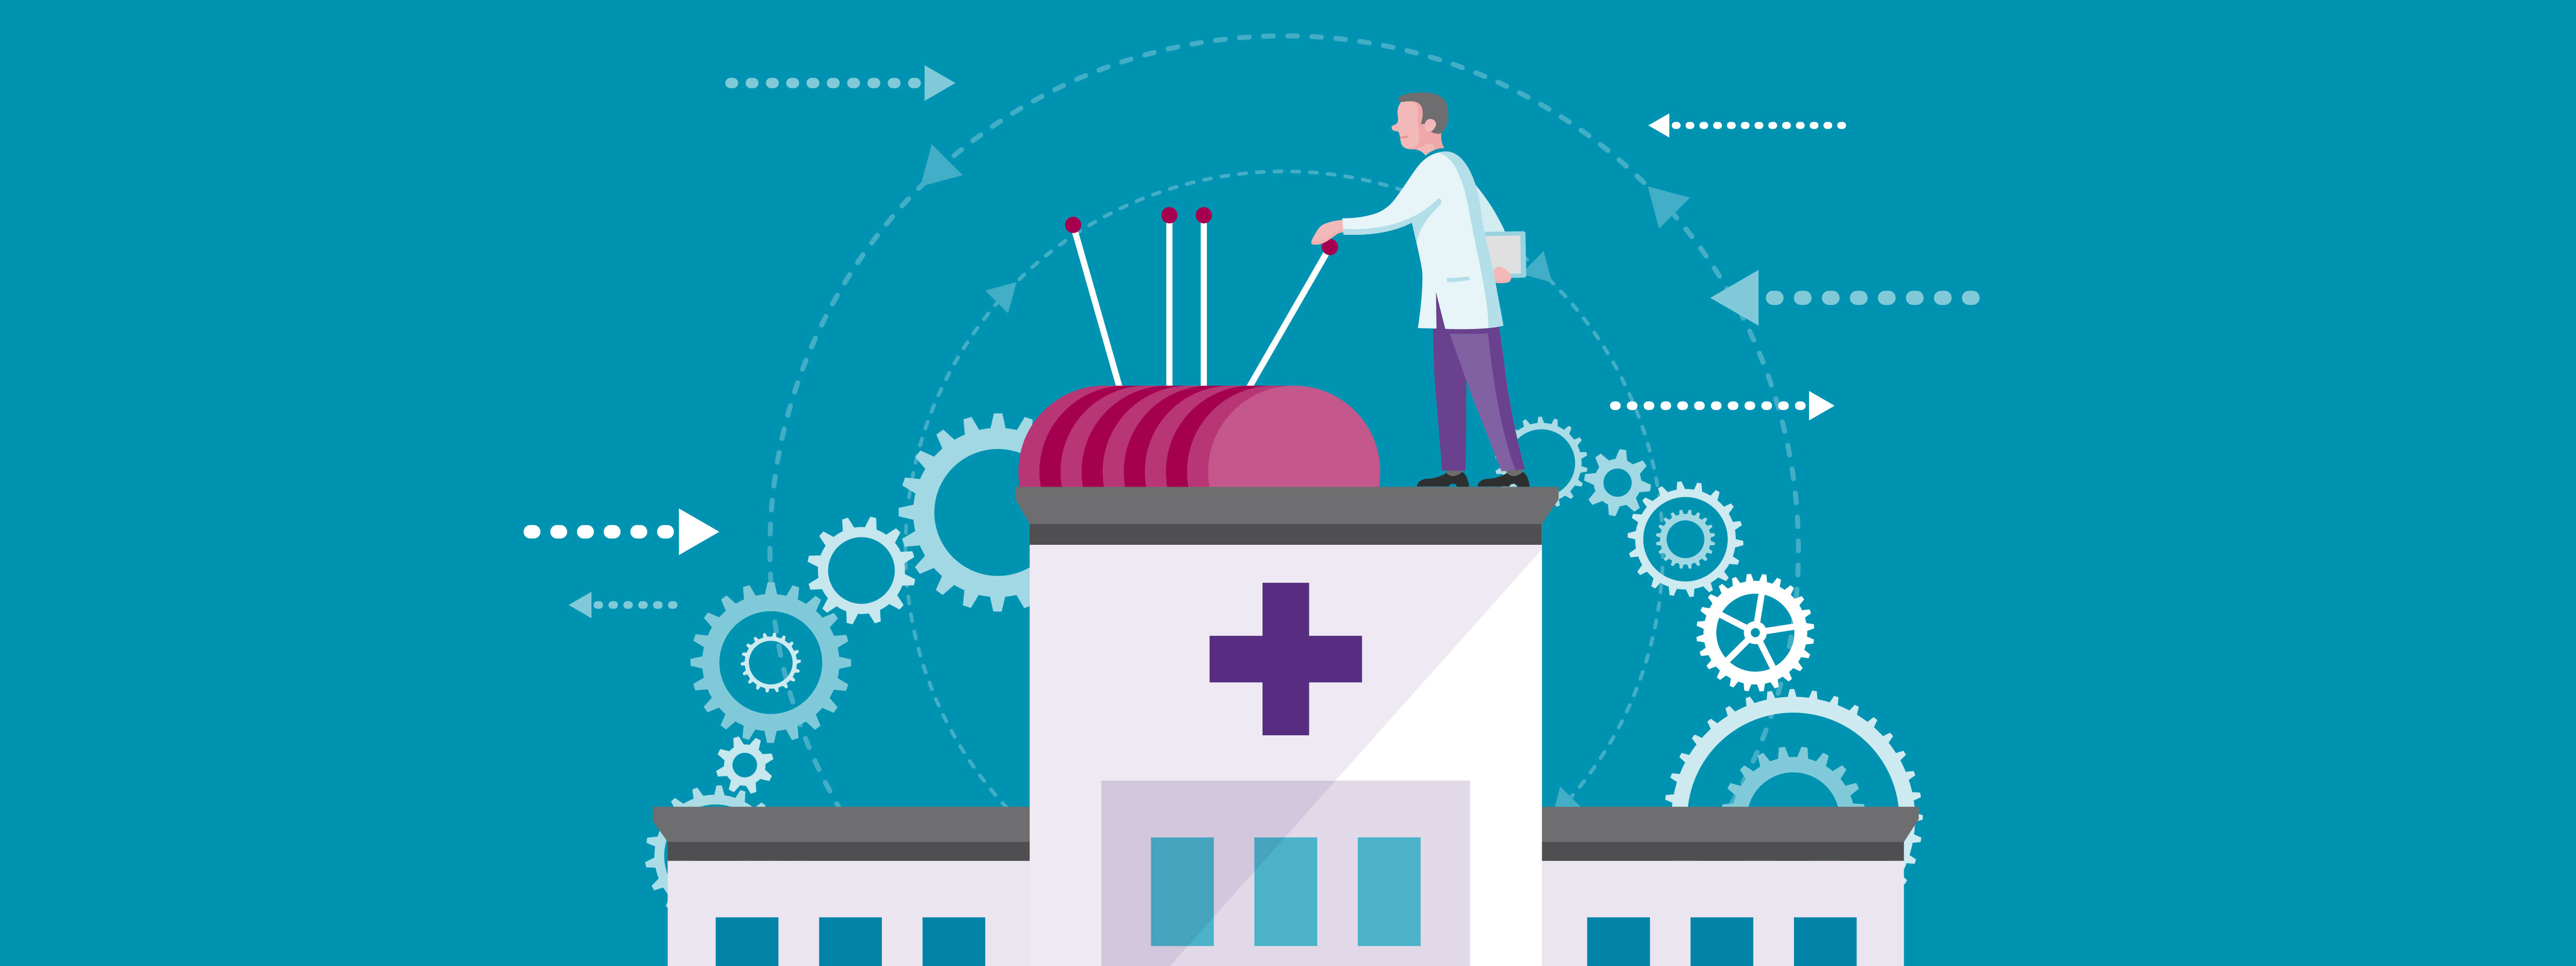 illustration of a doctor standing on top of a hospital pulling several large levers